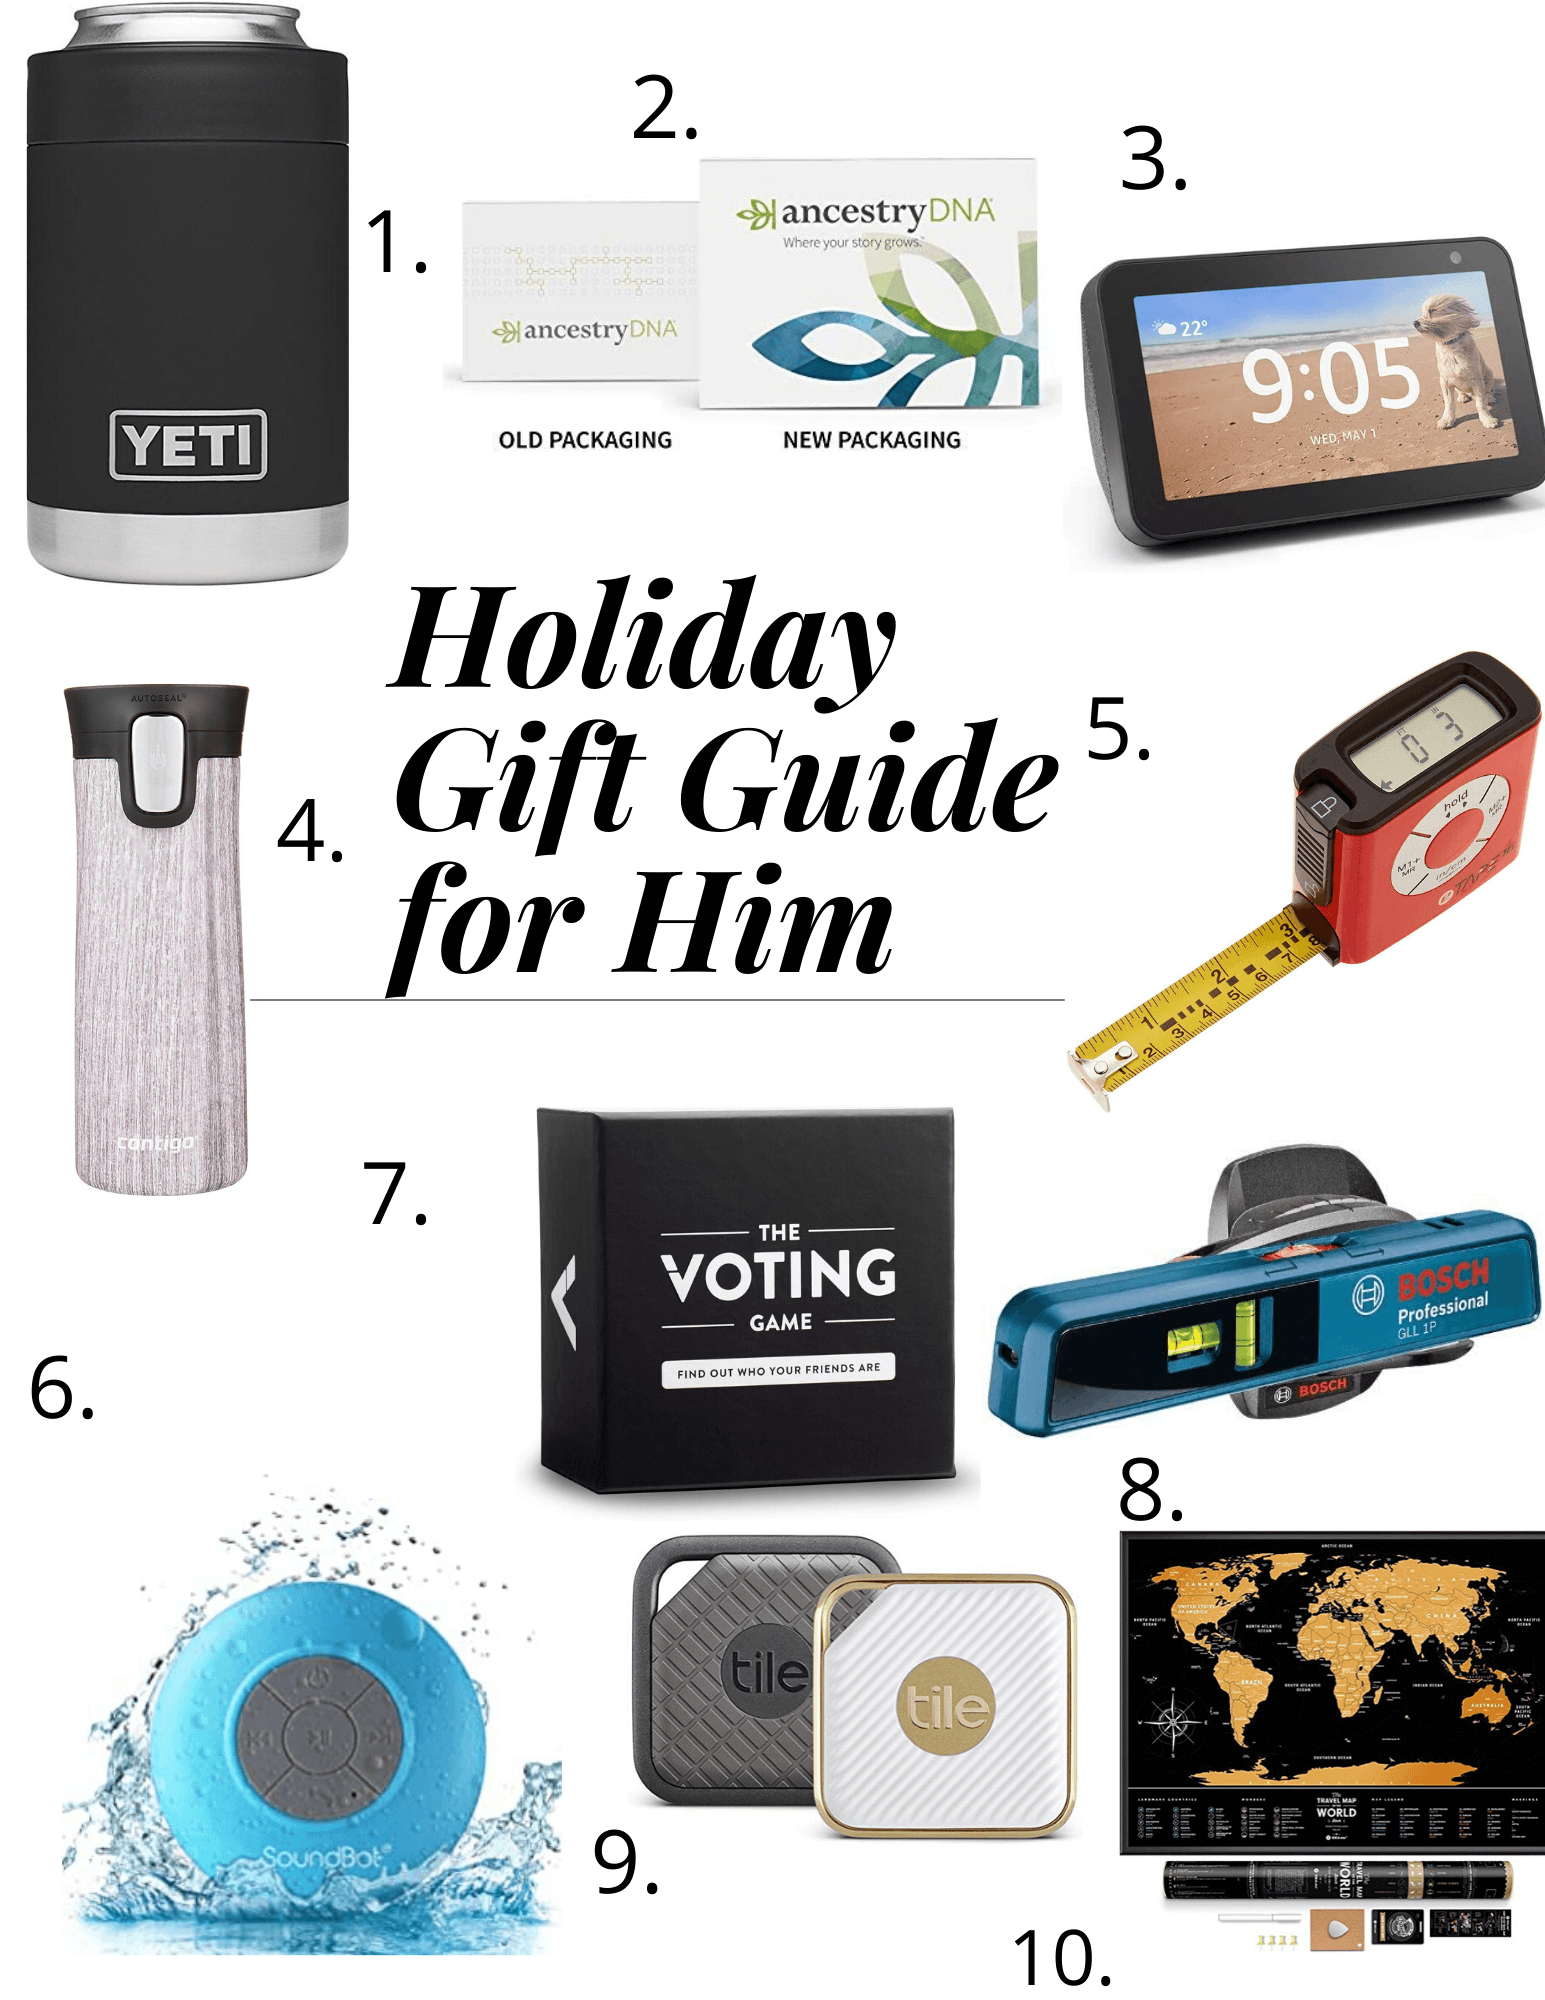 Christmas holiday Gift Guide for Him sparkleshinylove; gift ideas for him